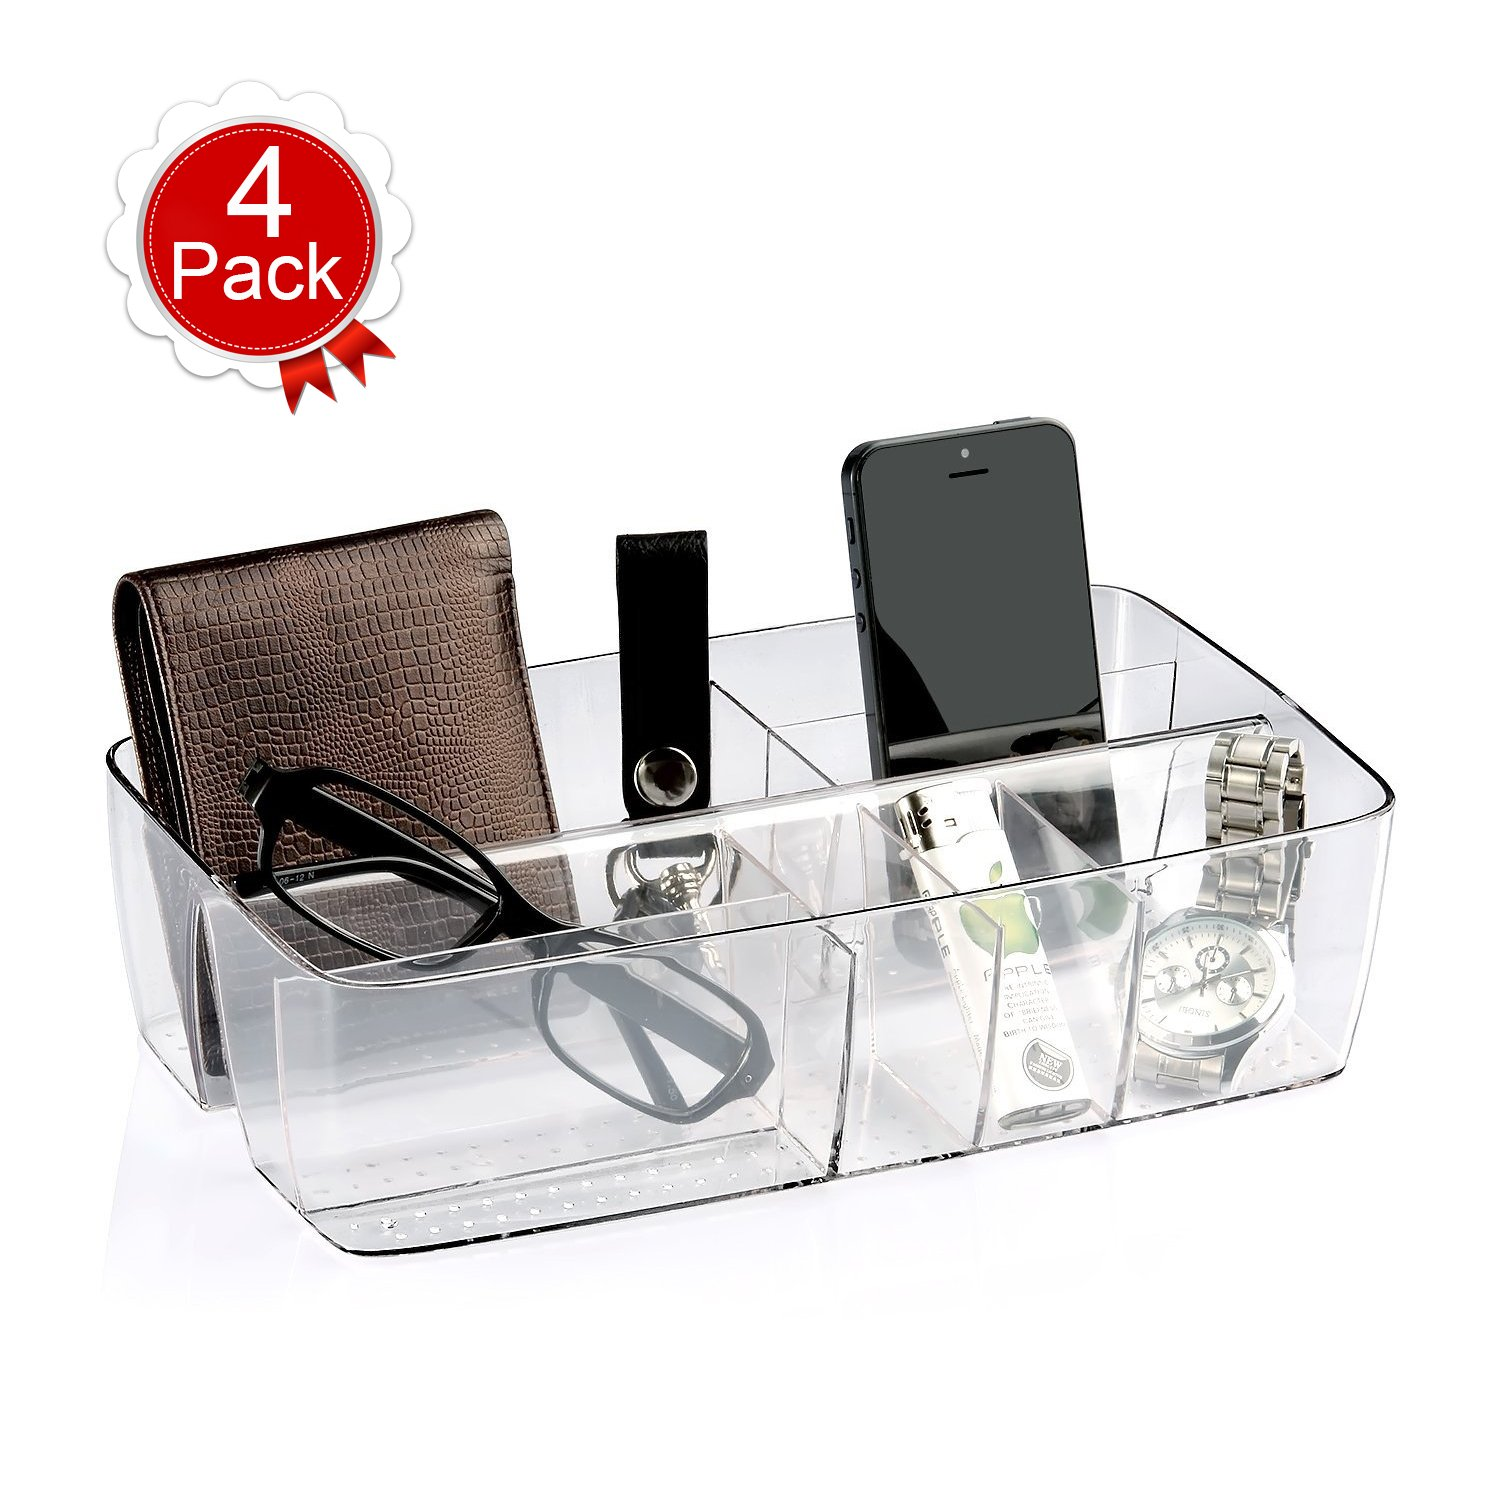 """BUDGET & GOOD 4 Pack Drawer Organizer Trays for Desk, Utensils, Tools, Crafts, Vanity, Office Supply Caddy - 10.24"""" x5.51"""" x 2.76""""- Clear"""